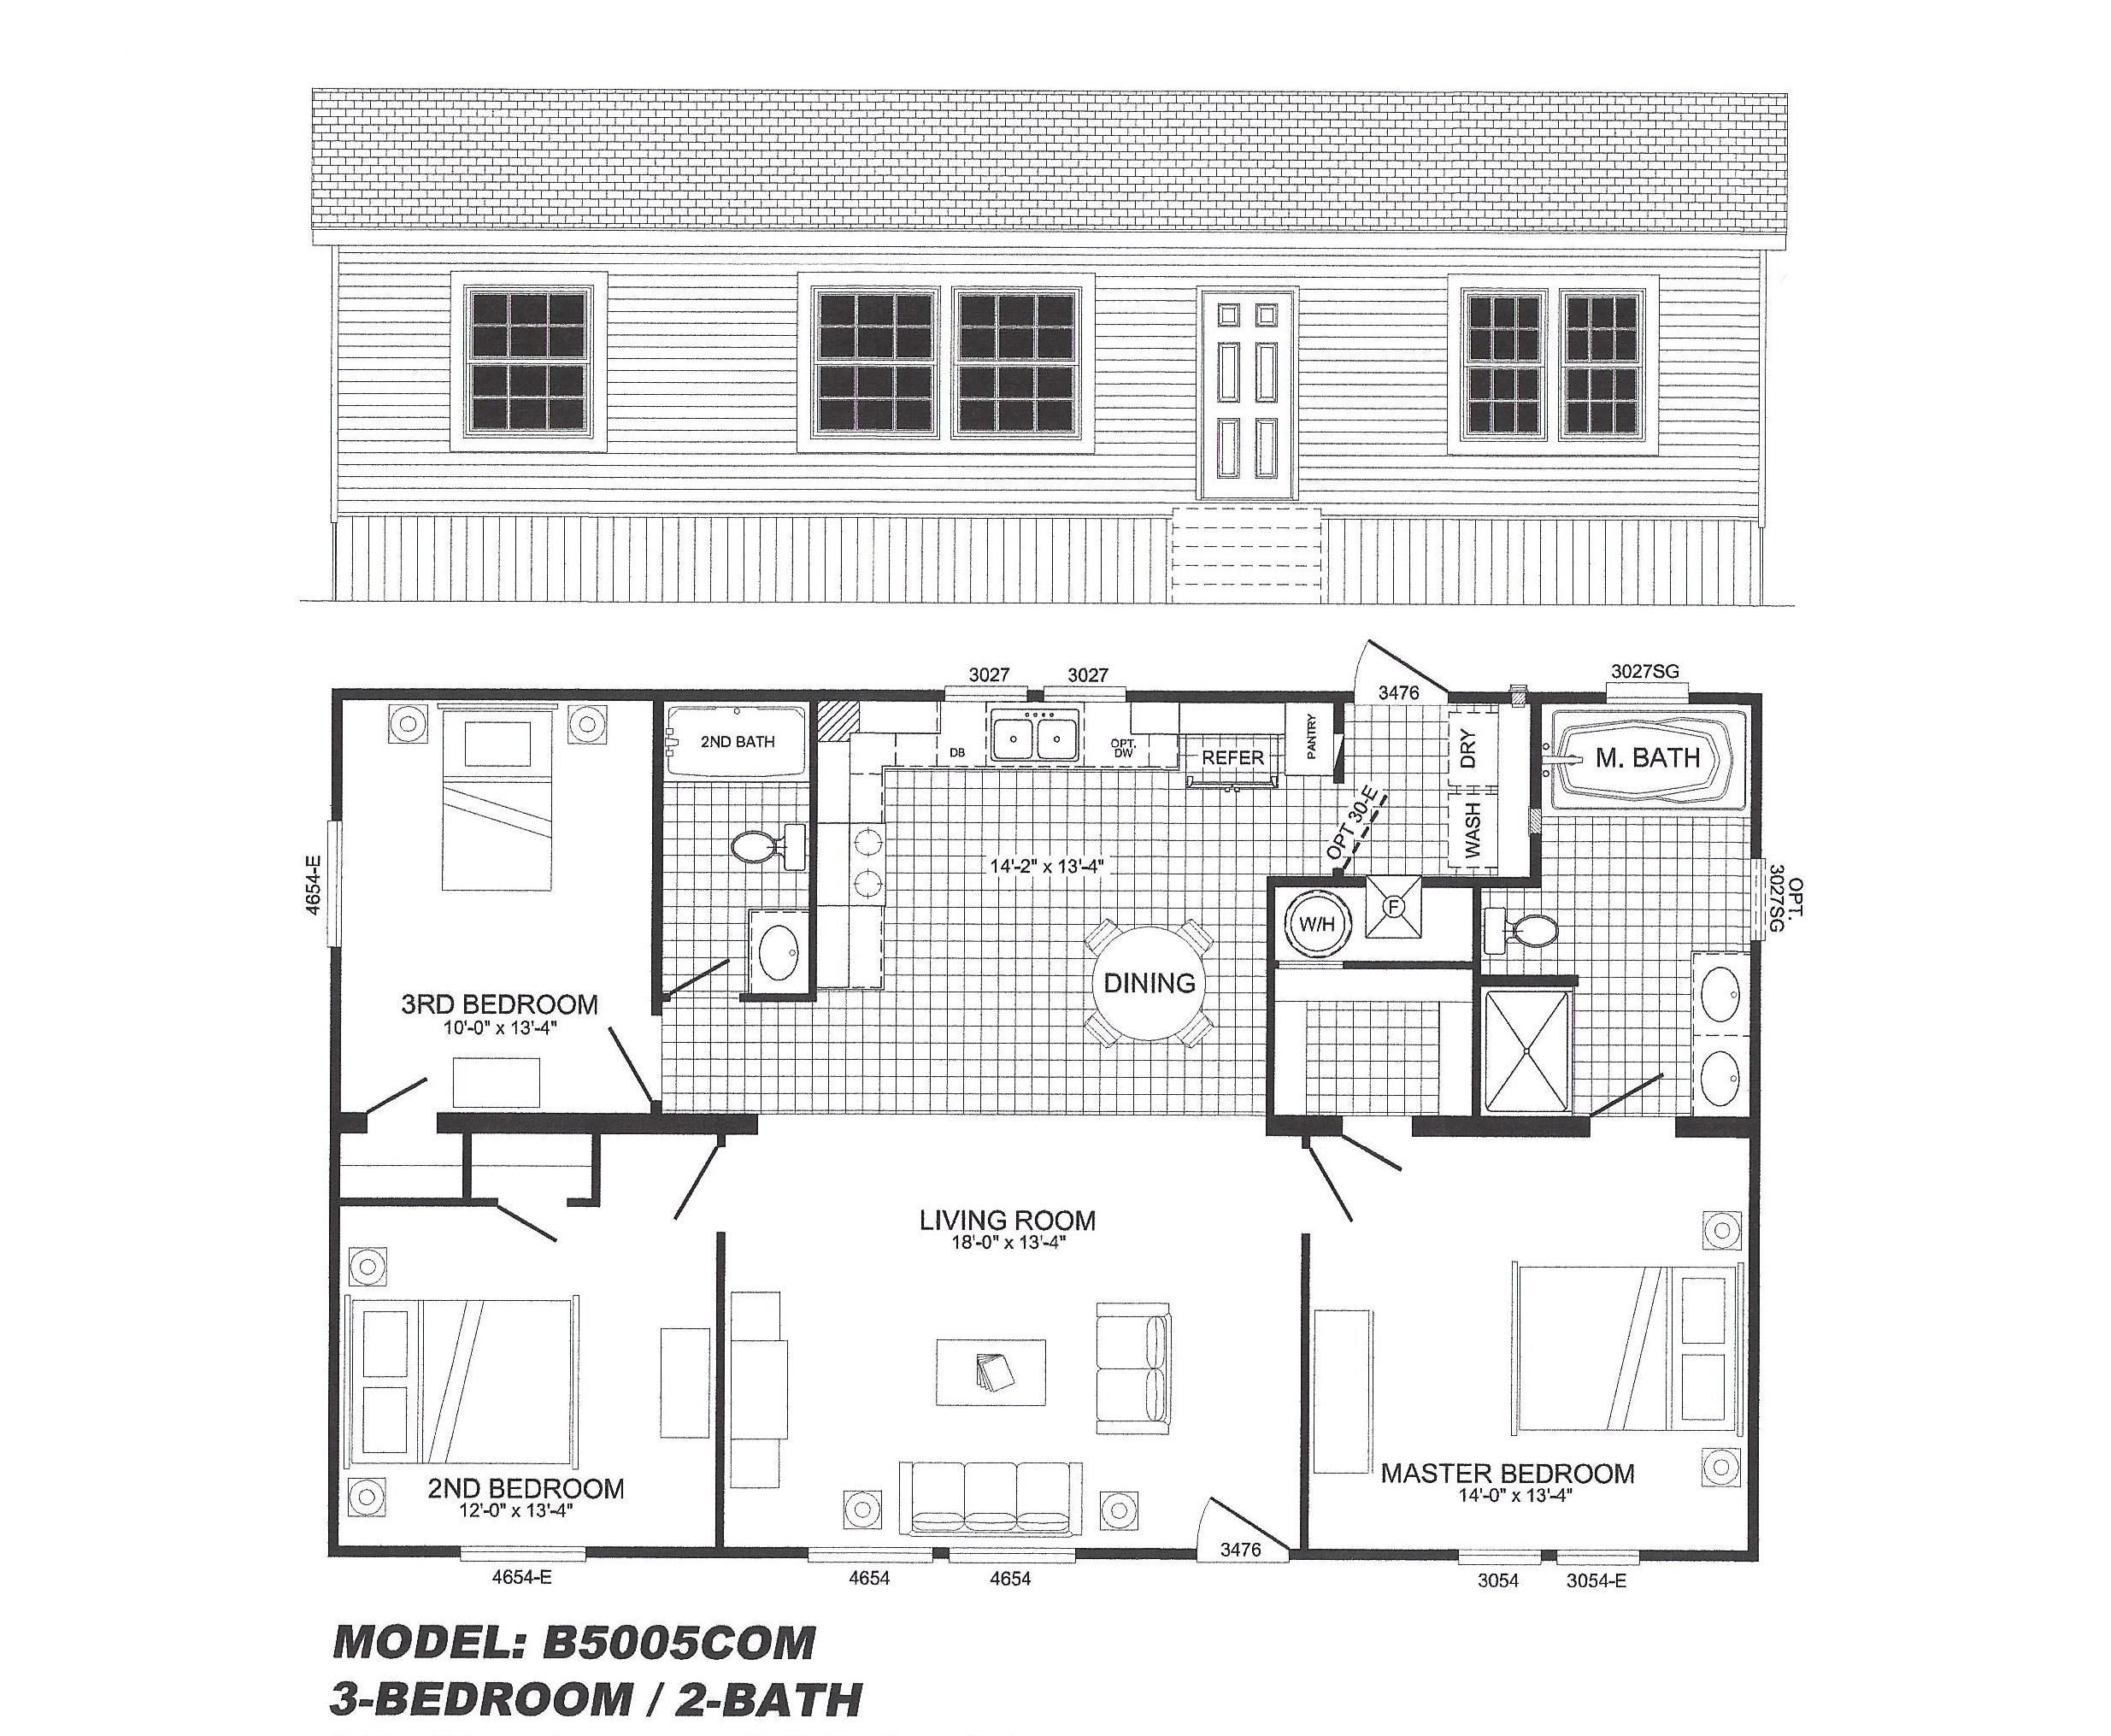 3 bedroom floor plan b 5005 hawks homes manufactured modular conway little rock arkansas Small bathroom floor plans australia